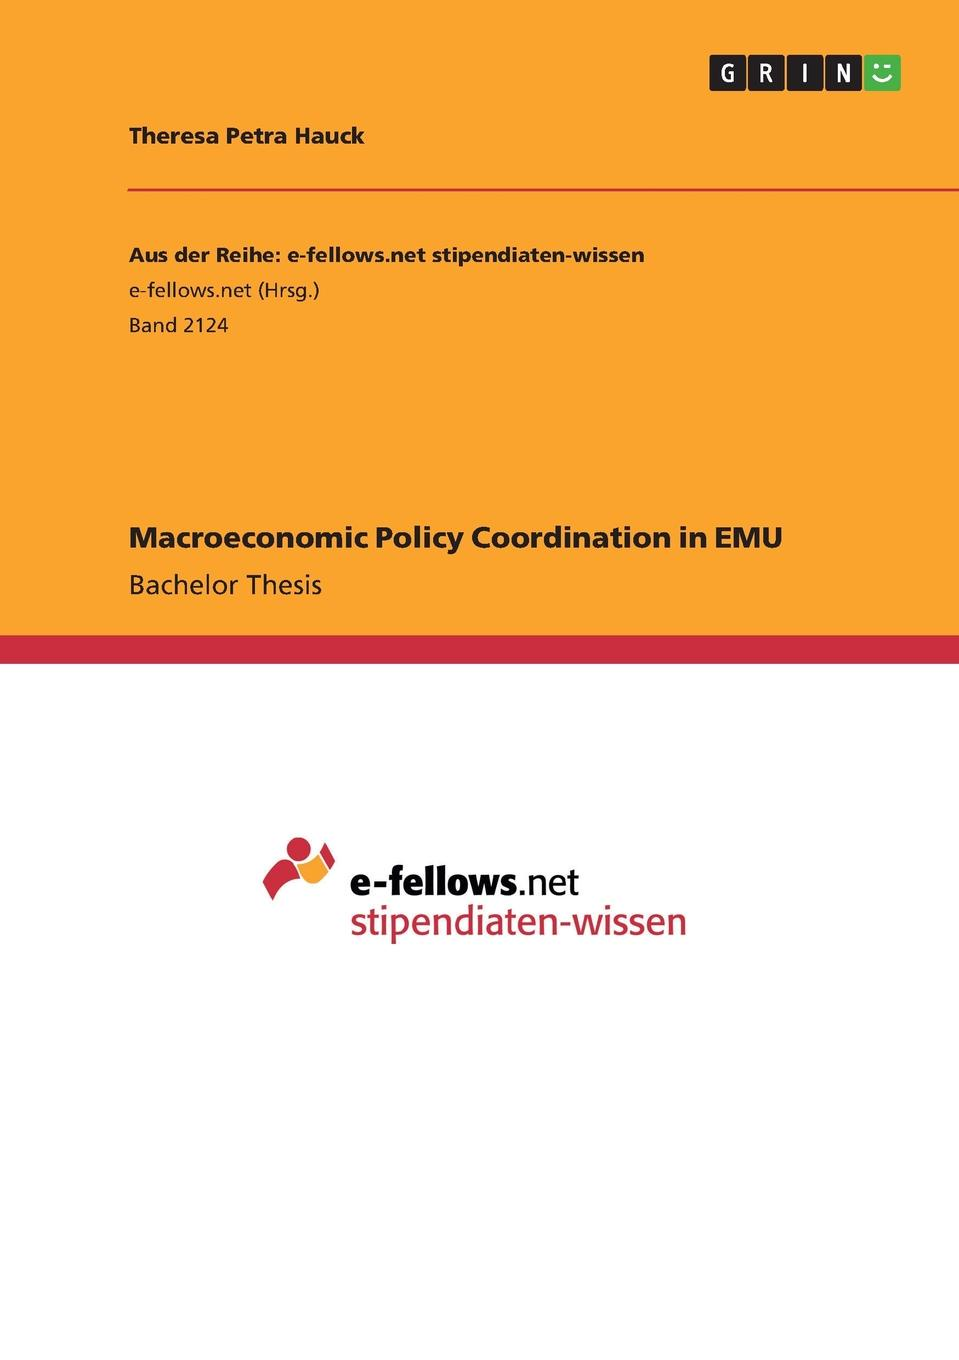 Theresa Petra Hauck Macroeconomic Policy Coordination in EMU shahdad naghshpour fiscal policy within the is lm framework